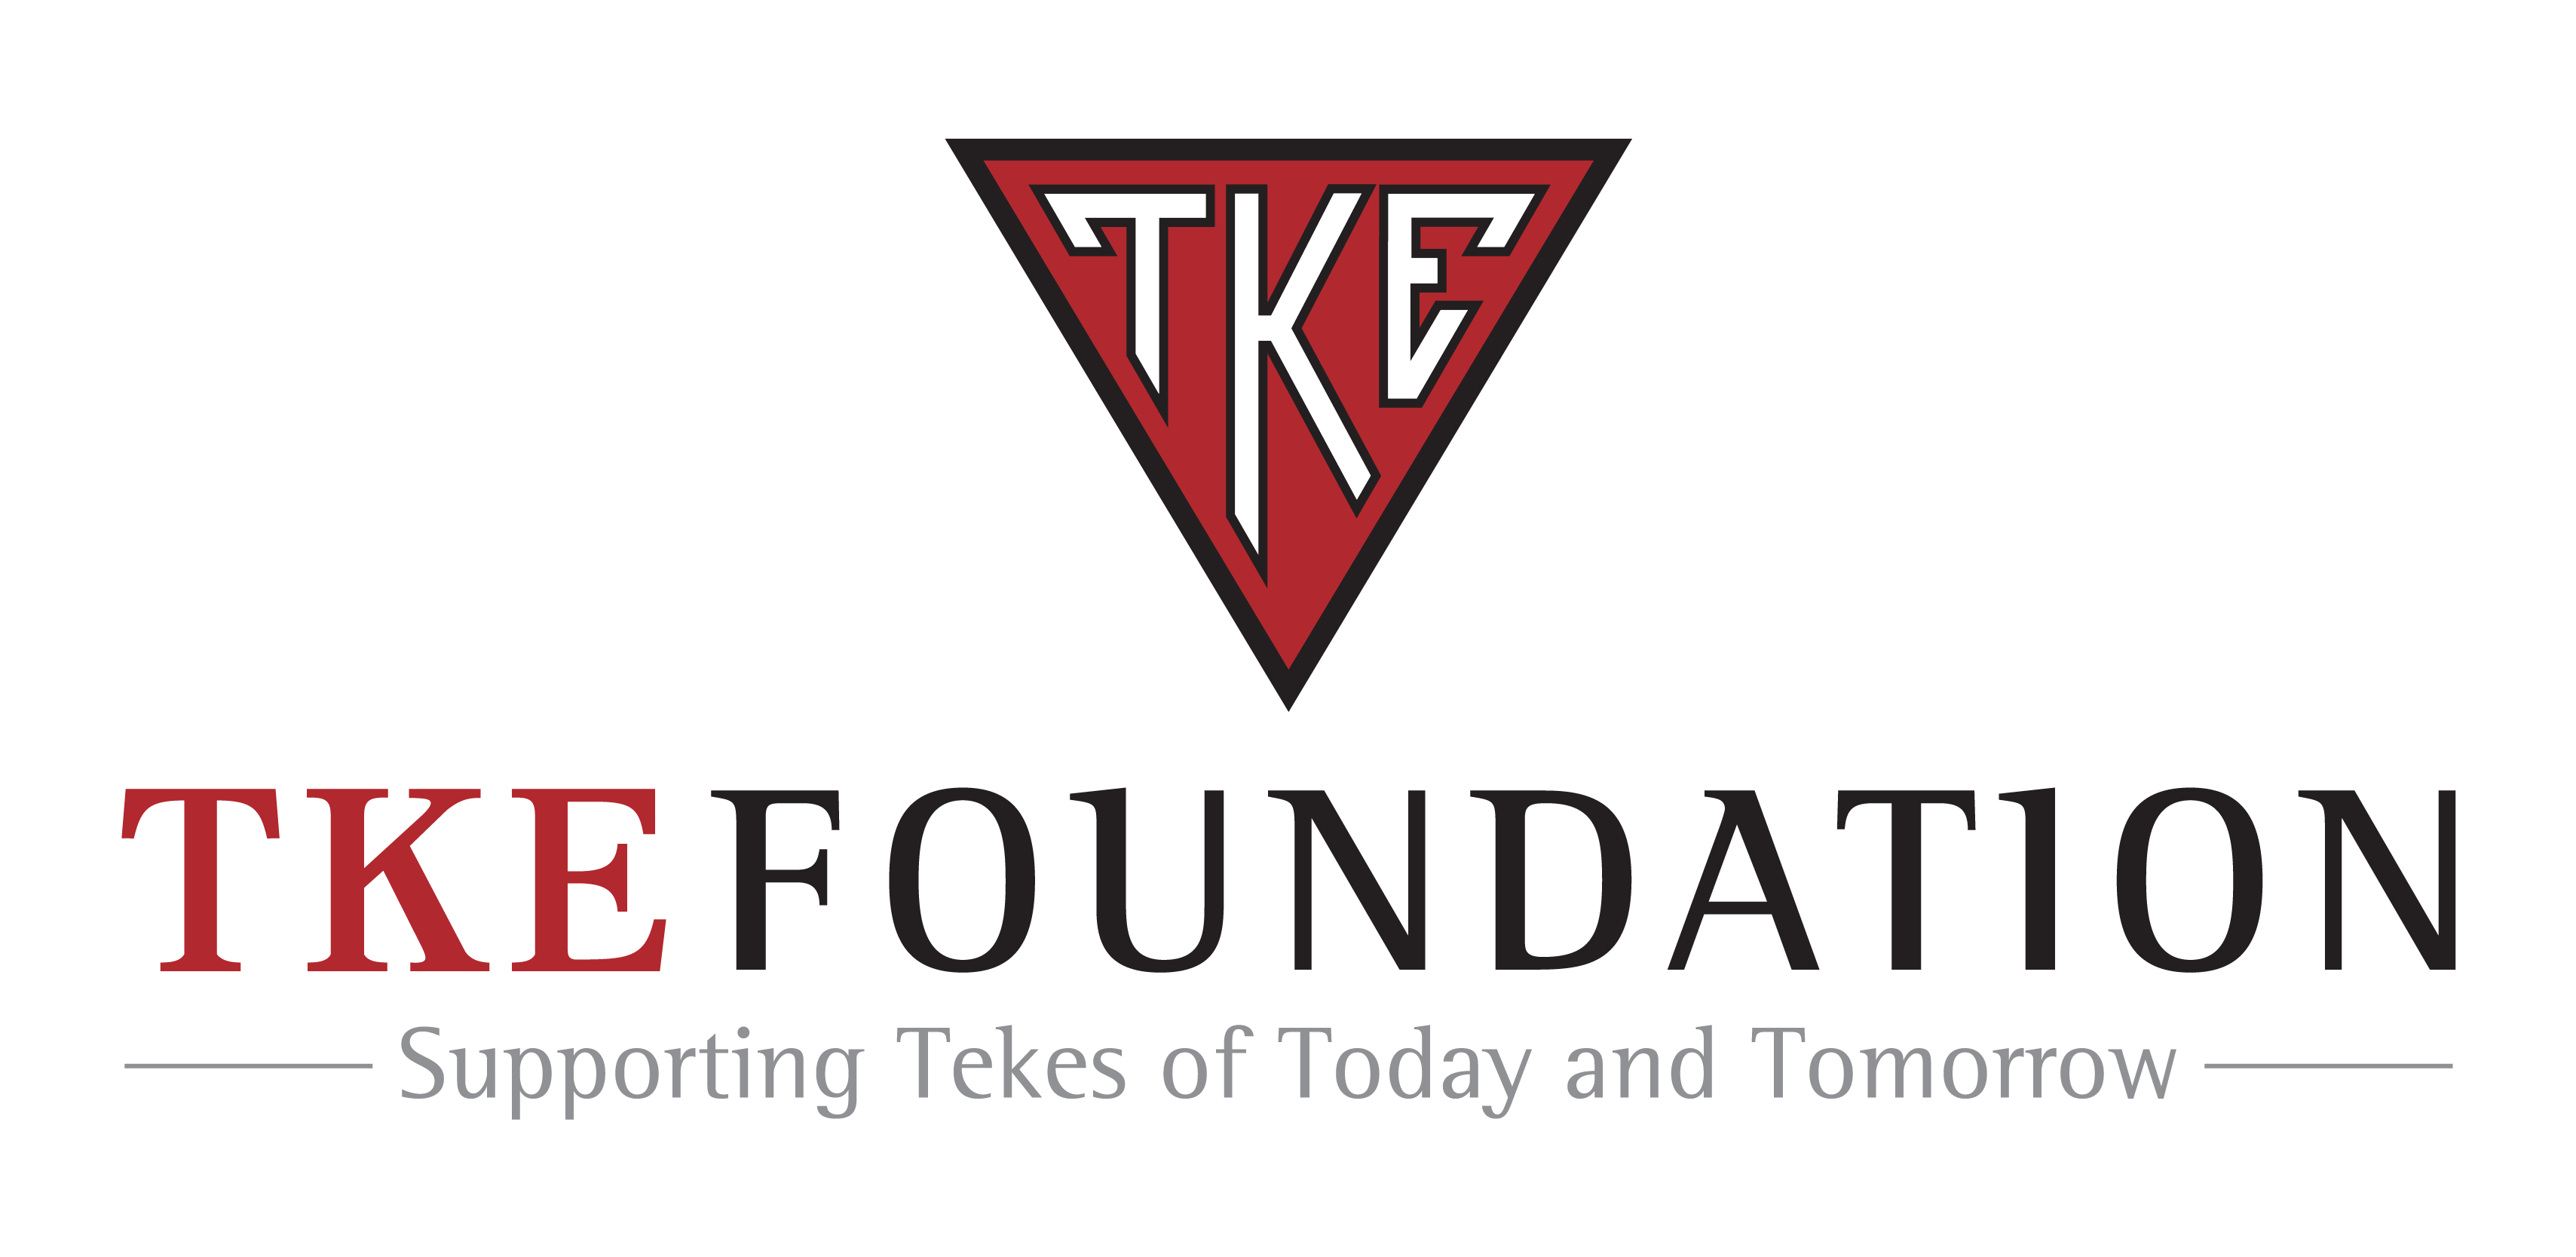 TKE Foundation Announces New Name